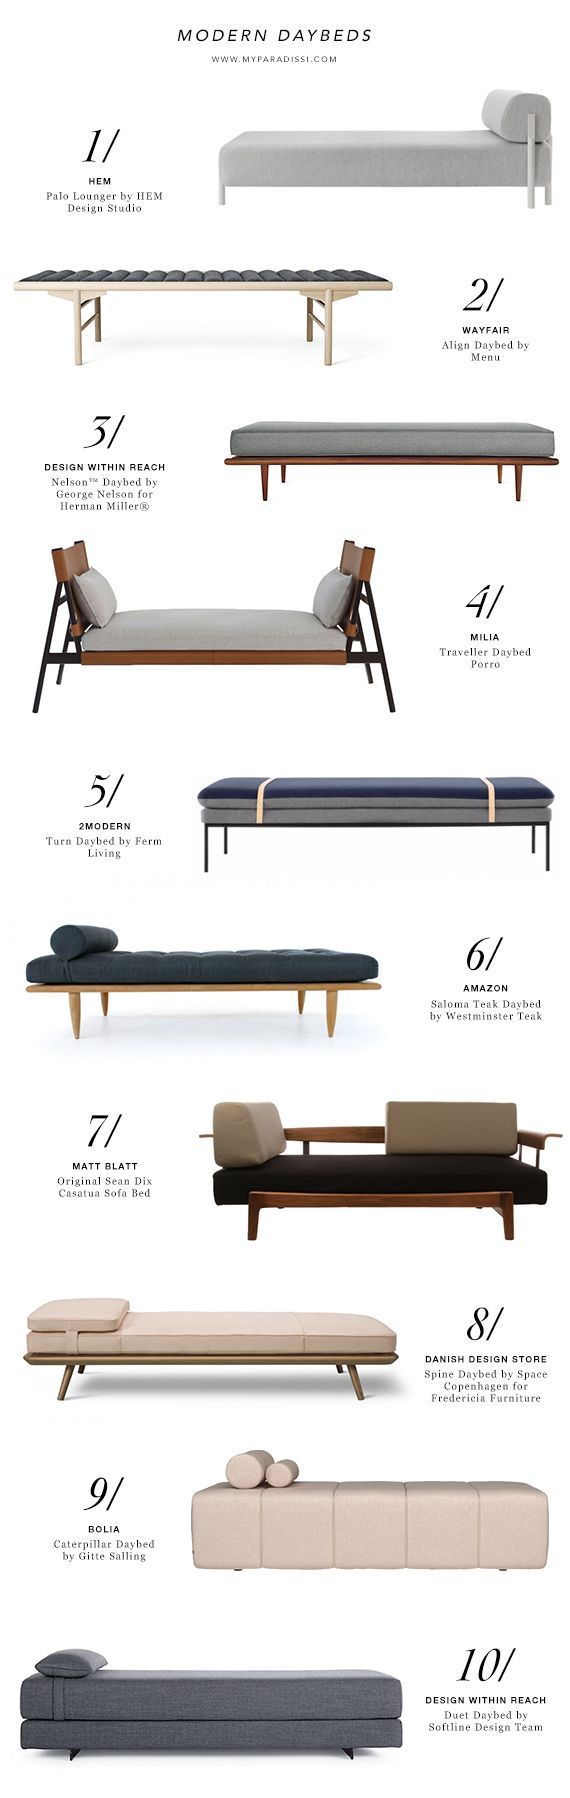 //沙發 //床 10 BEST: Modern daybeds